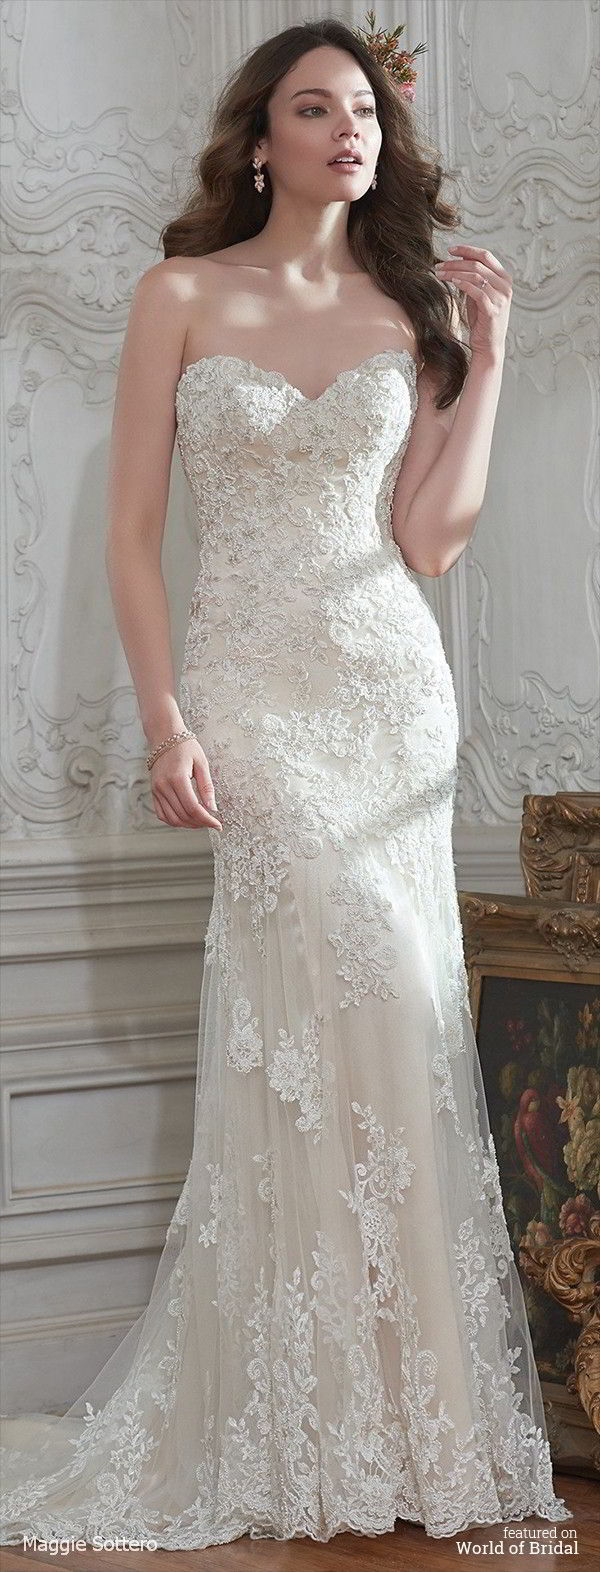 Maggie Sottero Spring 2016 Clic Lace And Tulle Sheath Wedding Dress